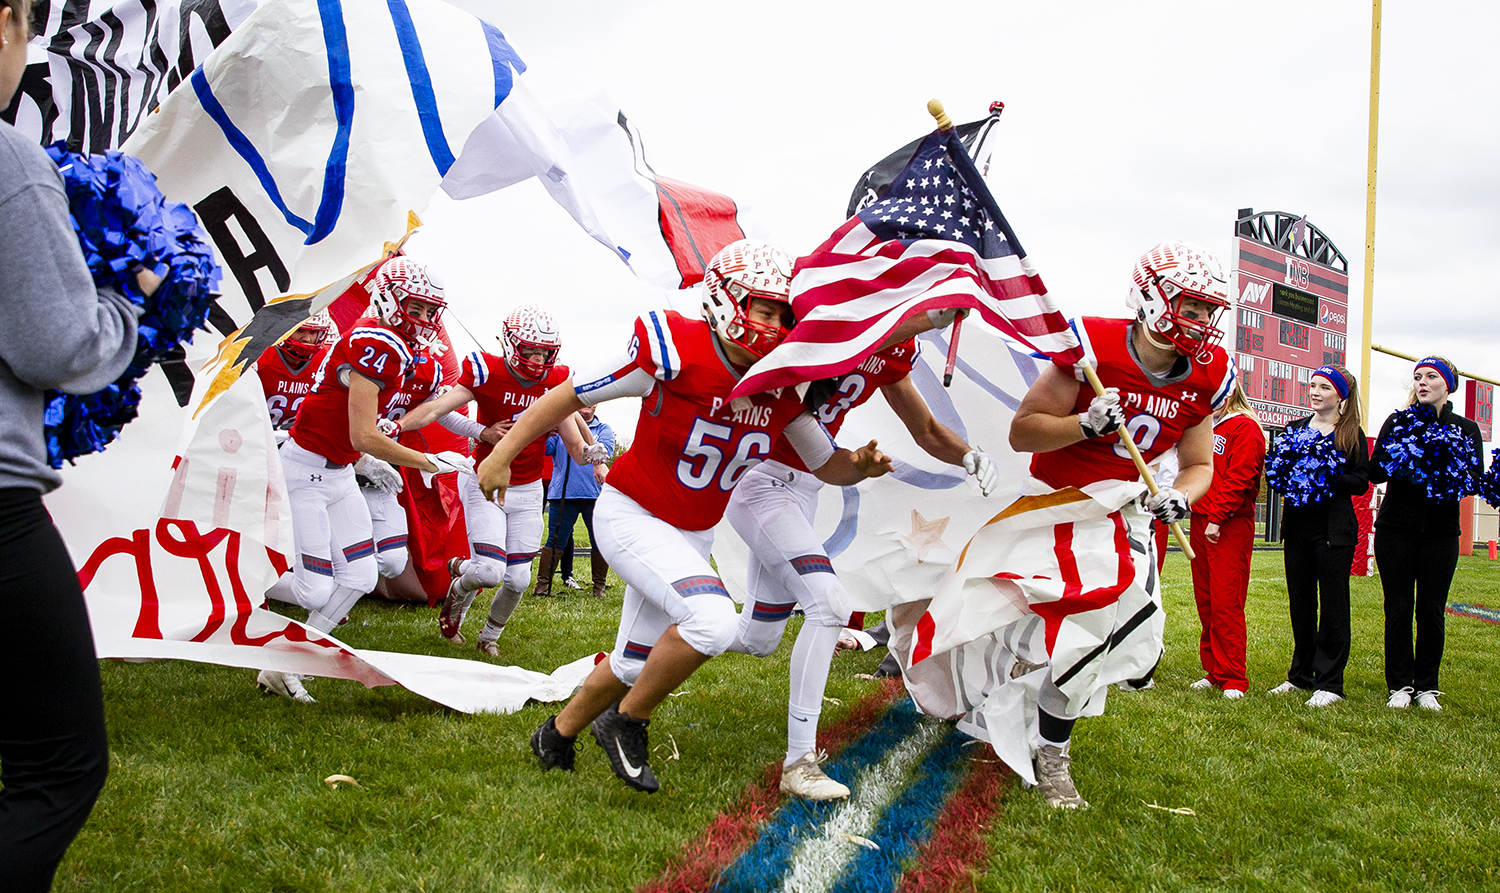 Pleasant Plains seniors Chris Ellis (56), Keigan Halford (3) and Jake Hermes lead the Cardinals onto the field for the Class 2A playoff game against the Greenville Comets Saturday, Nov. 3, 2018 at Pleasant Plains High School in Pleasant Plains, Ill. [Rich Saal/The State Journal-Register]